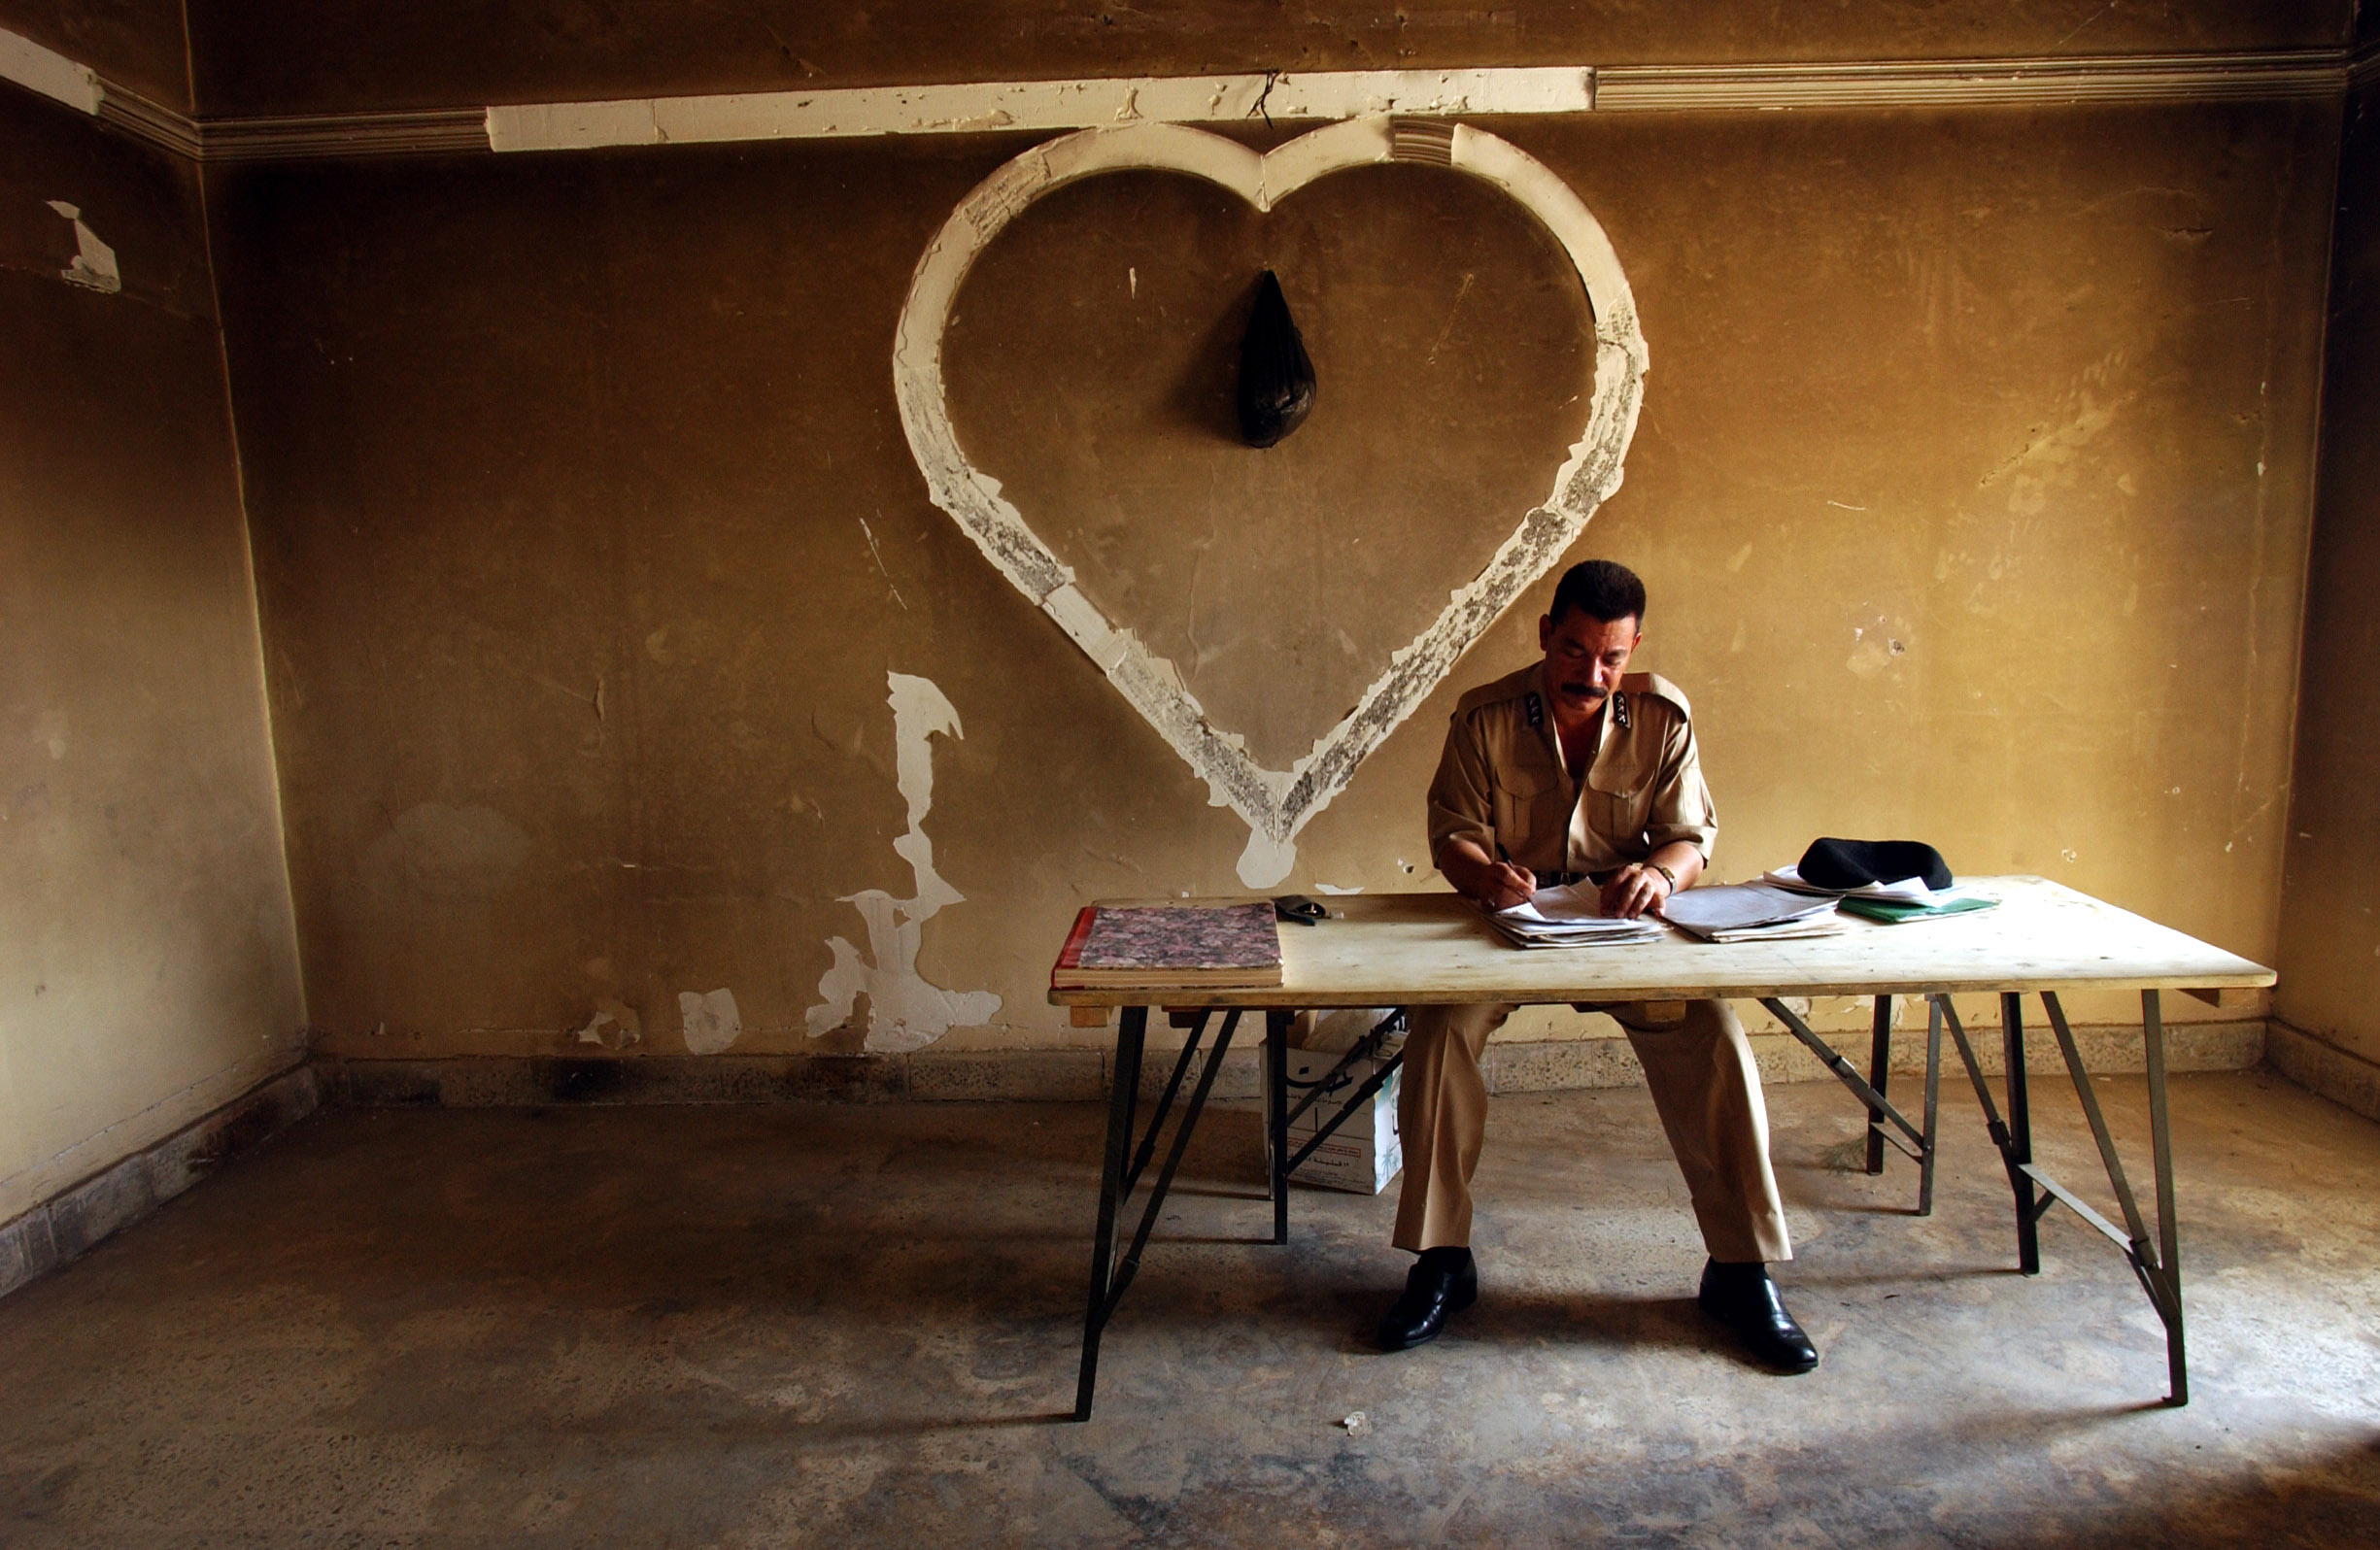 An Iraqi police clerk fills out a report in the former office of the head of the Republic Party of Basra in one of the old Bath Party Headquarters-turned-police station in Old Basra, Iraq, May 26, 2003.  As part of the philospphy of the Royal MIlitary Police, the soldiers are teaching Iraqi Policemen to fill out reports for all everything that happens in their jurisdiction, in an effort to eventually pass all responsibility on to the Iraqis.  There is rising speculation as to whether the British manner of patrolling Basra has been more successful in governing the city in contrast to the American's more stand-off-ish approach to governing Bagdad.  Unlike the Americans in Bagdad, the British often patrol Basra with no body armour and no helmets, and sometimes go out without their automatic weapons.